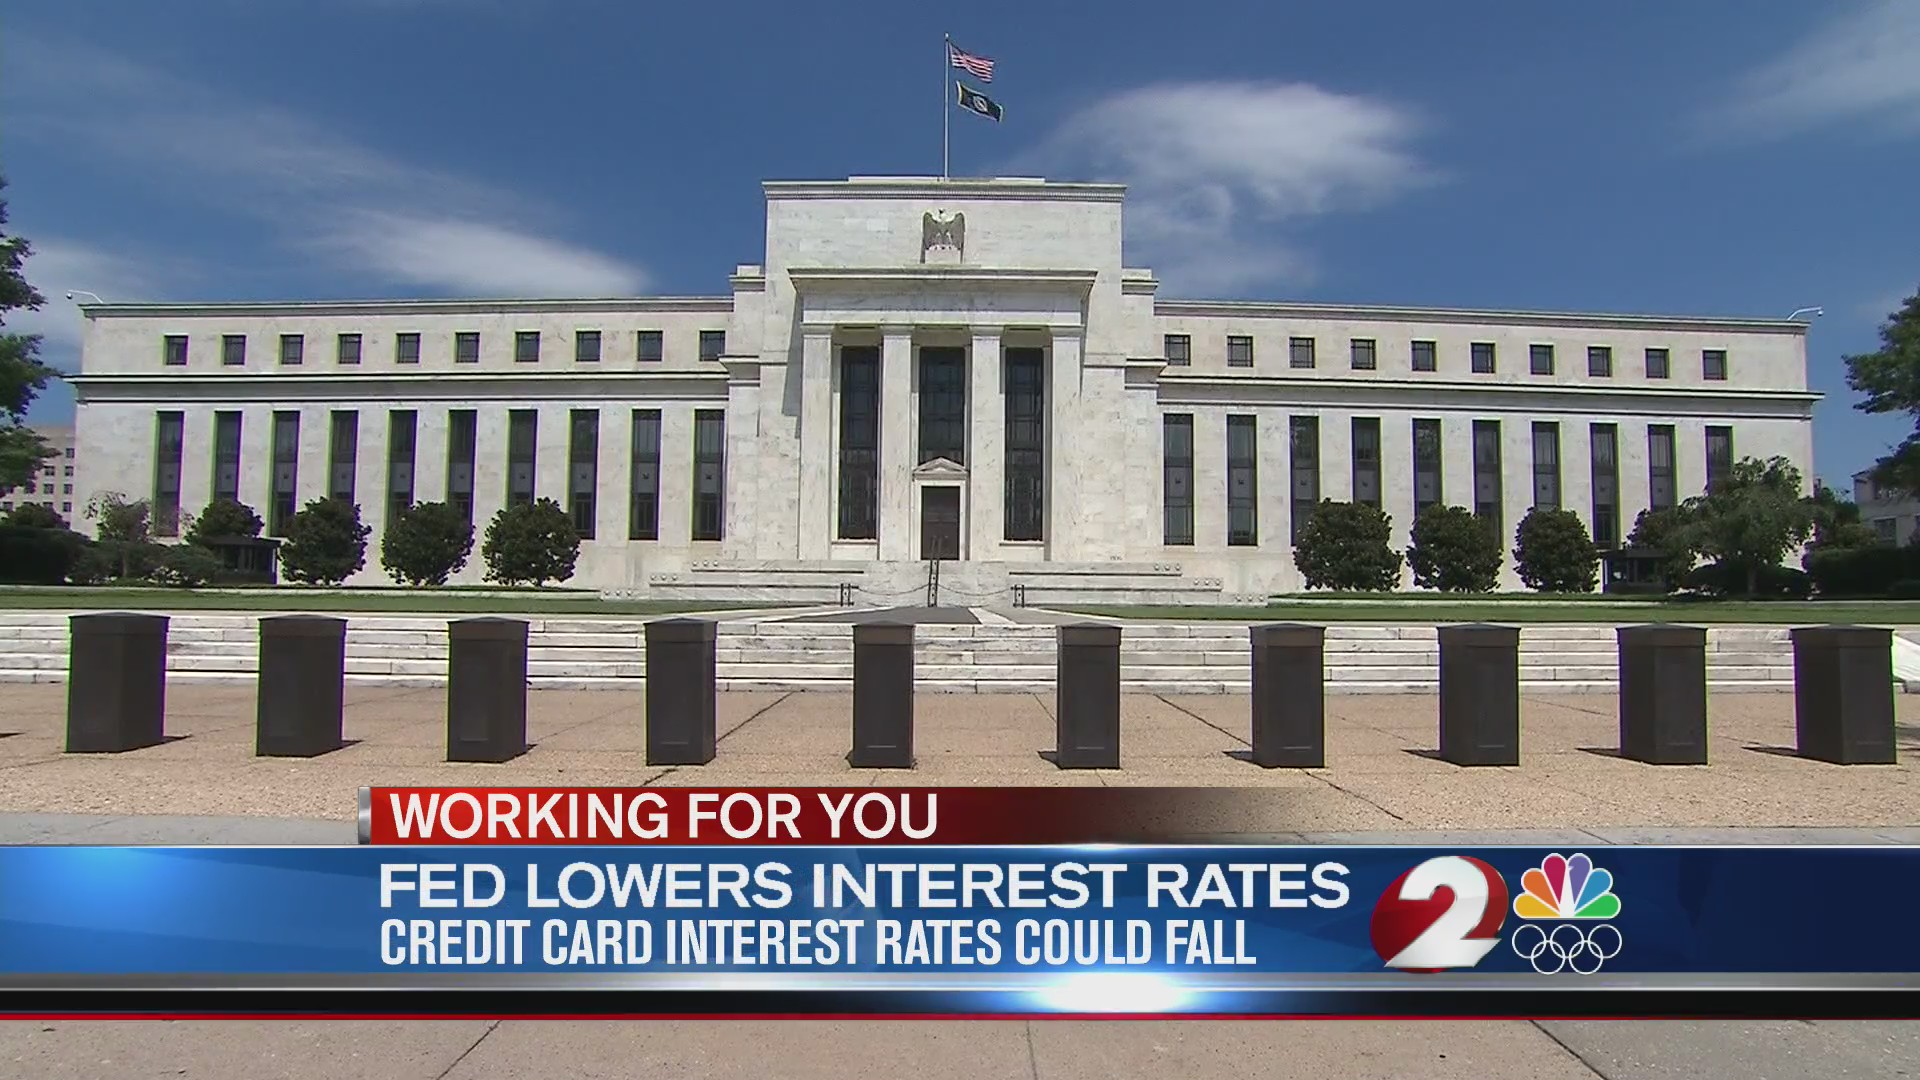 Credit card interest rates could fall